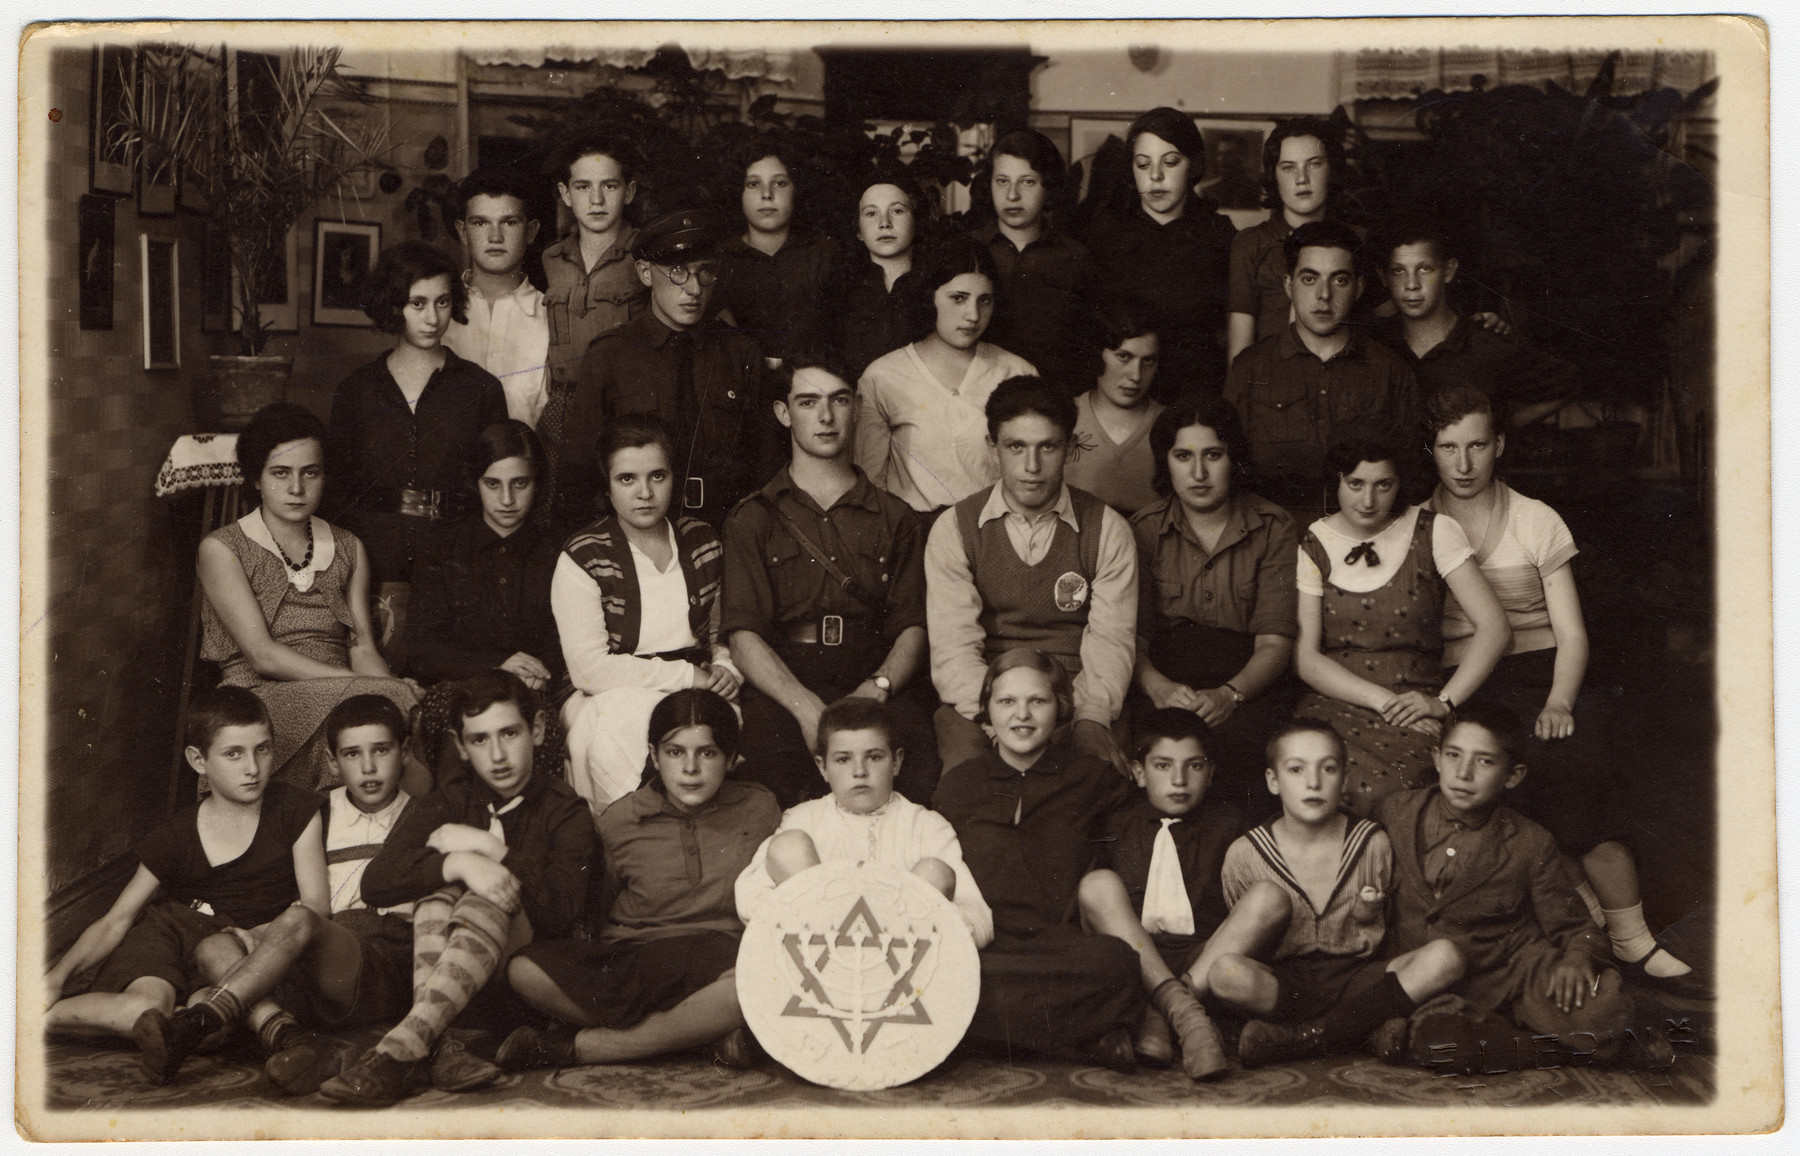 Group portrait of Jewish children and teenagers belonging to a Betar Zionist group in Latvia.